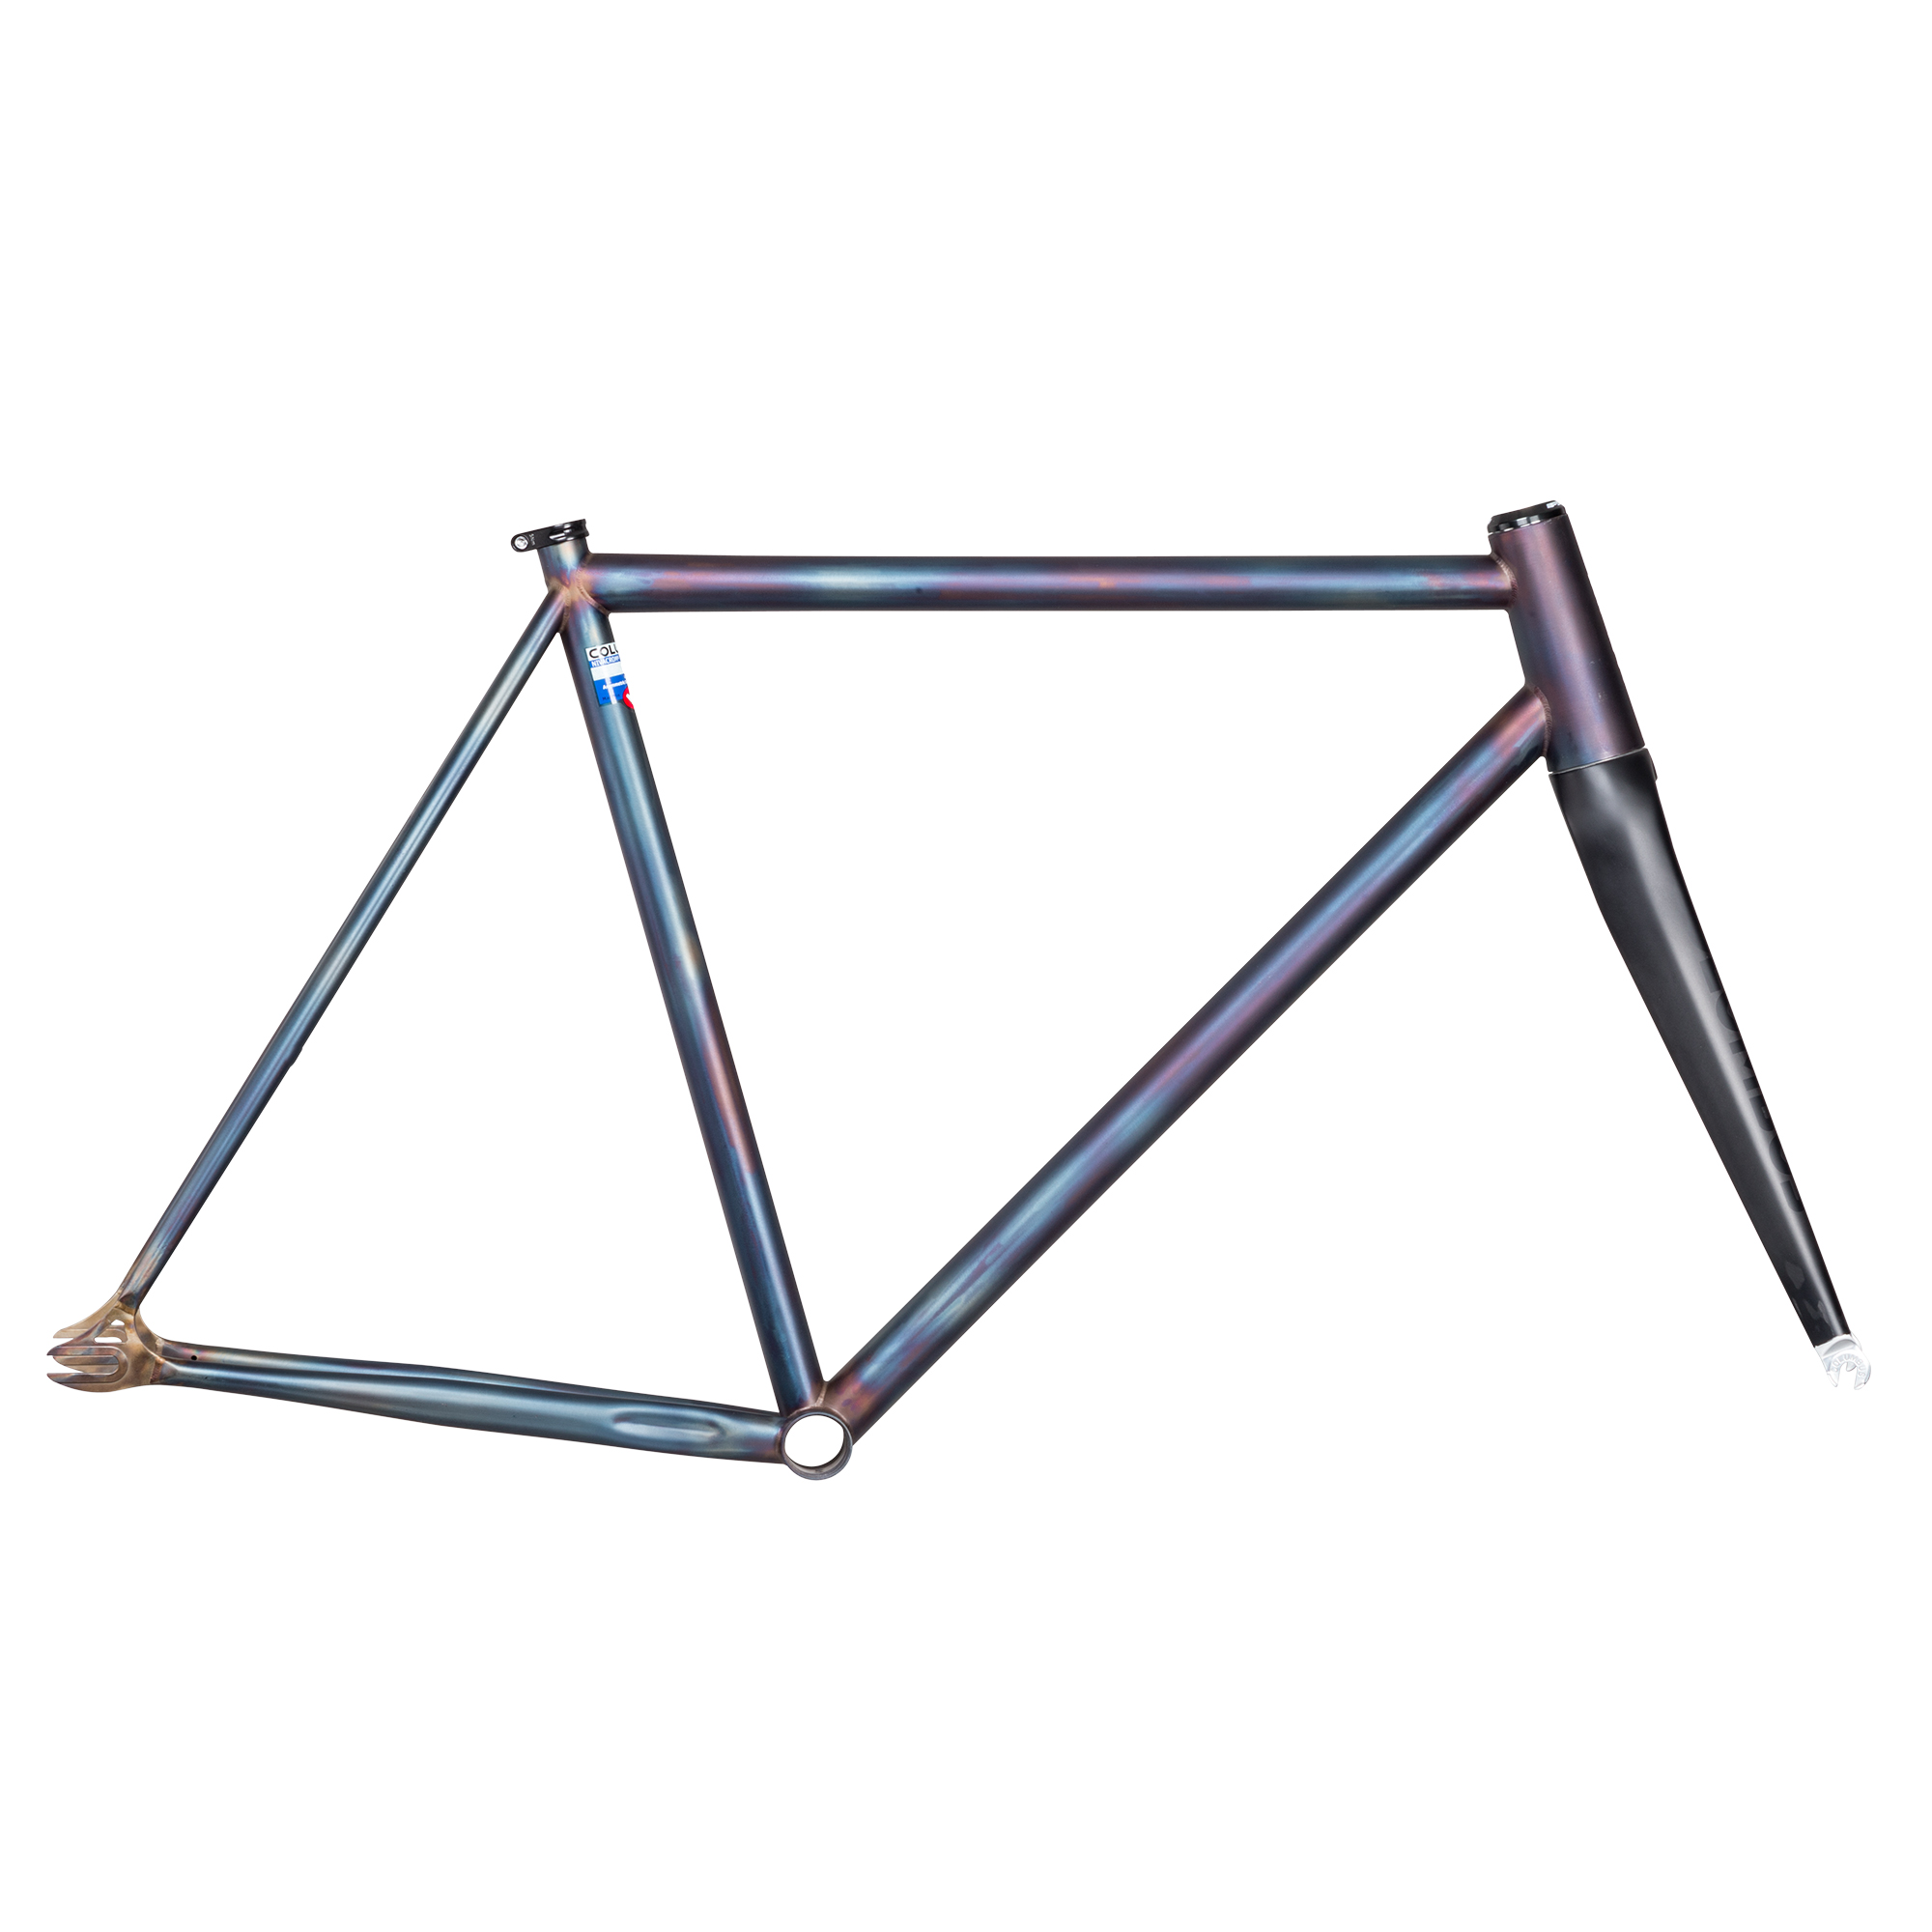 Suicycle_Riot_Track_Frame_Flamedraw_M_2